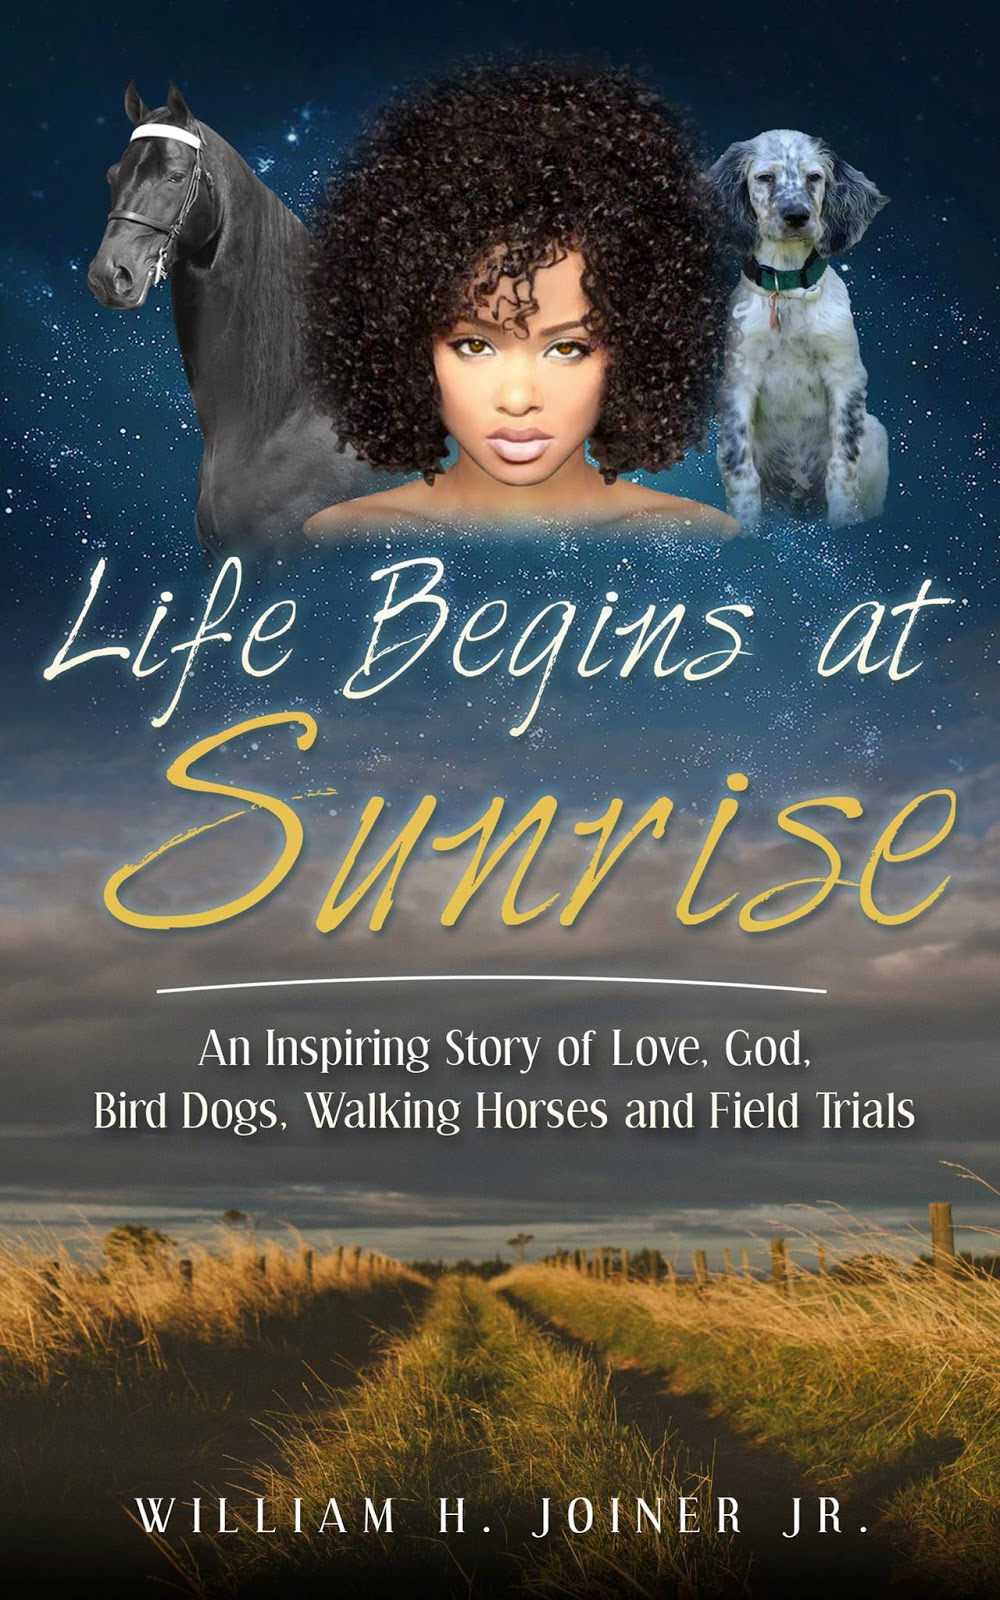 http://www.amazon.com/Life-Begins-Sunrise-Inspiring-Walking/dp/1499666063/ref=tmm_pap_title_0